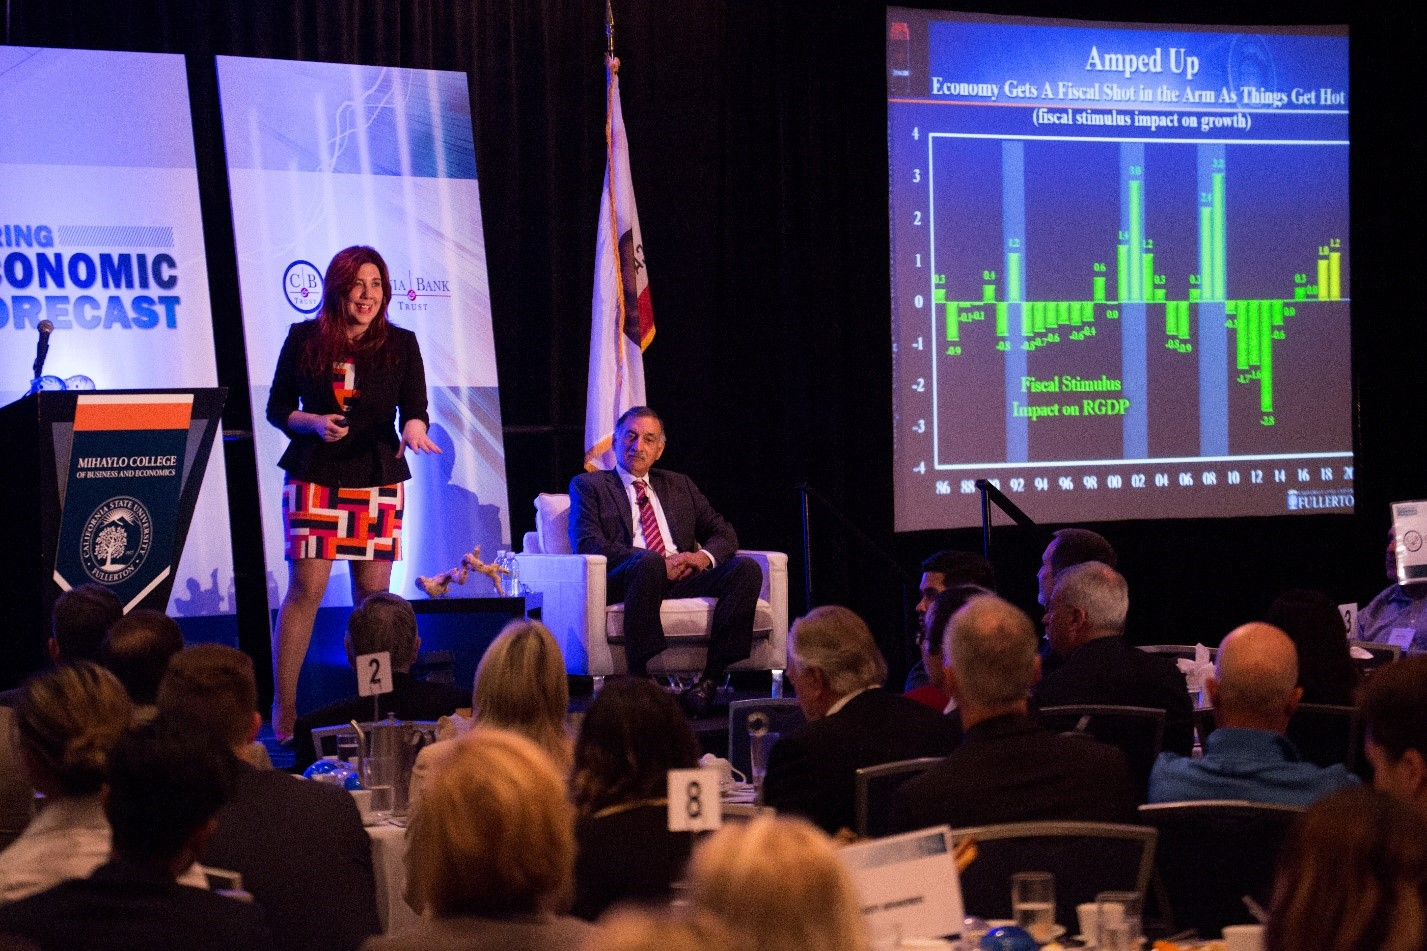 Mihaylo College Associate Professor of Economics Mira Farka discusses the outlook for the economy at the Spring Economic Forecast.